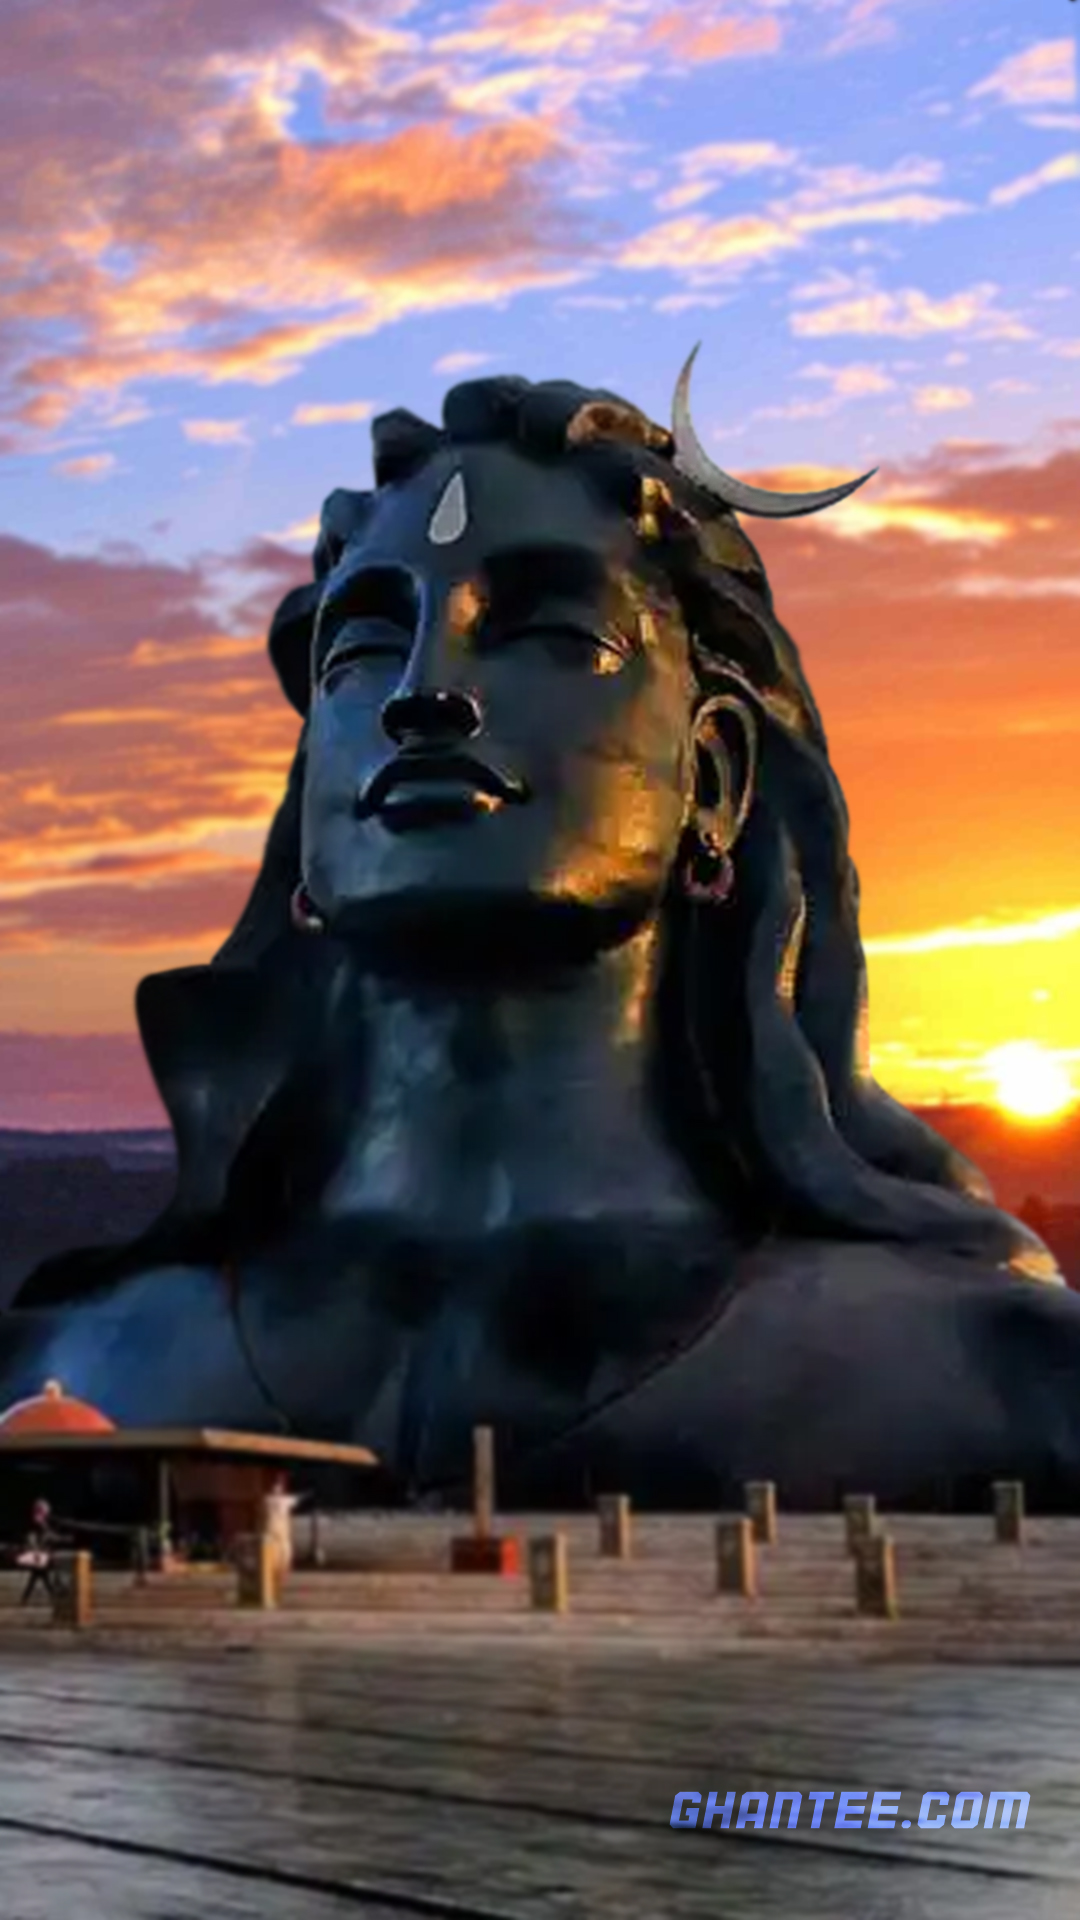 isha adiyogi bust dawn wallpaper for iphone | full HD